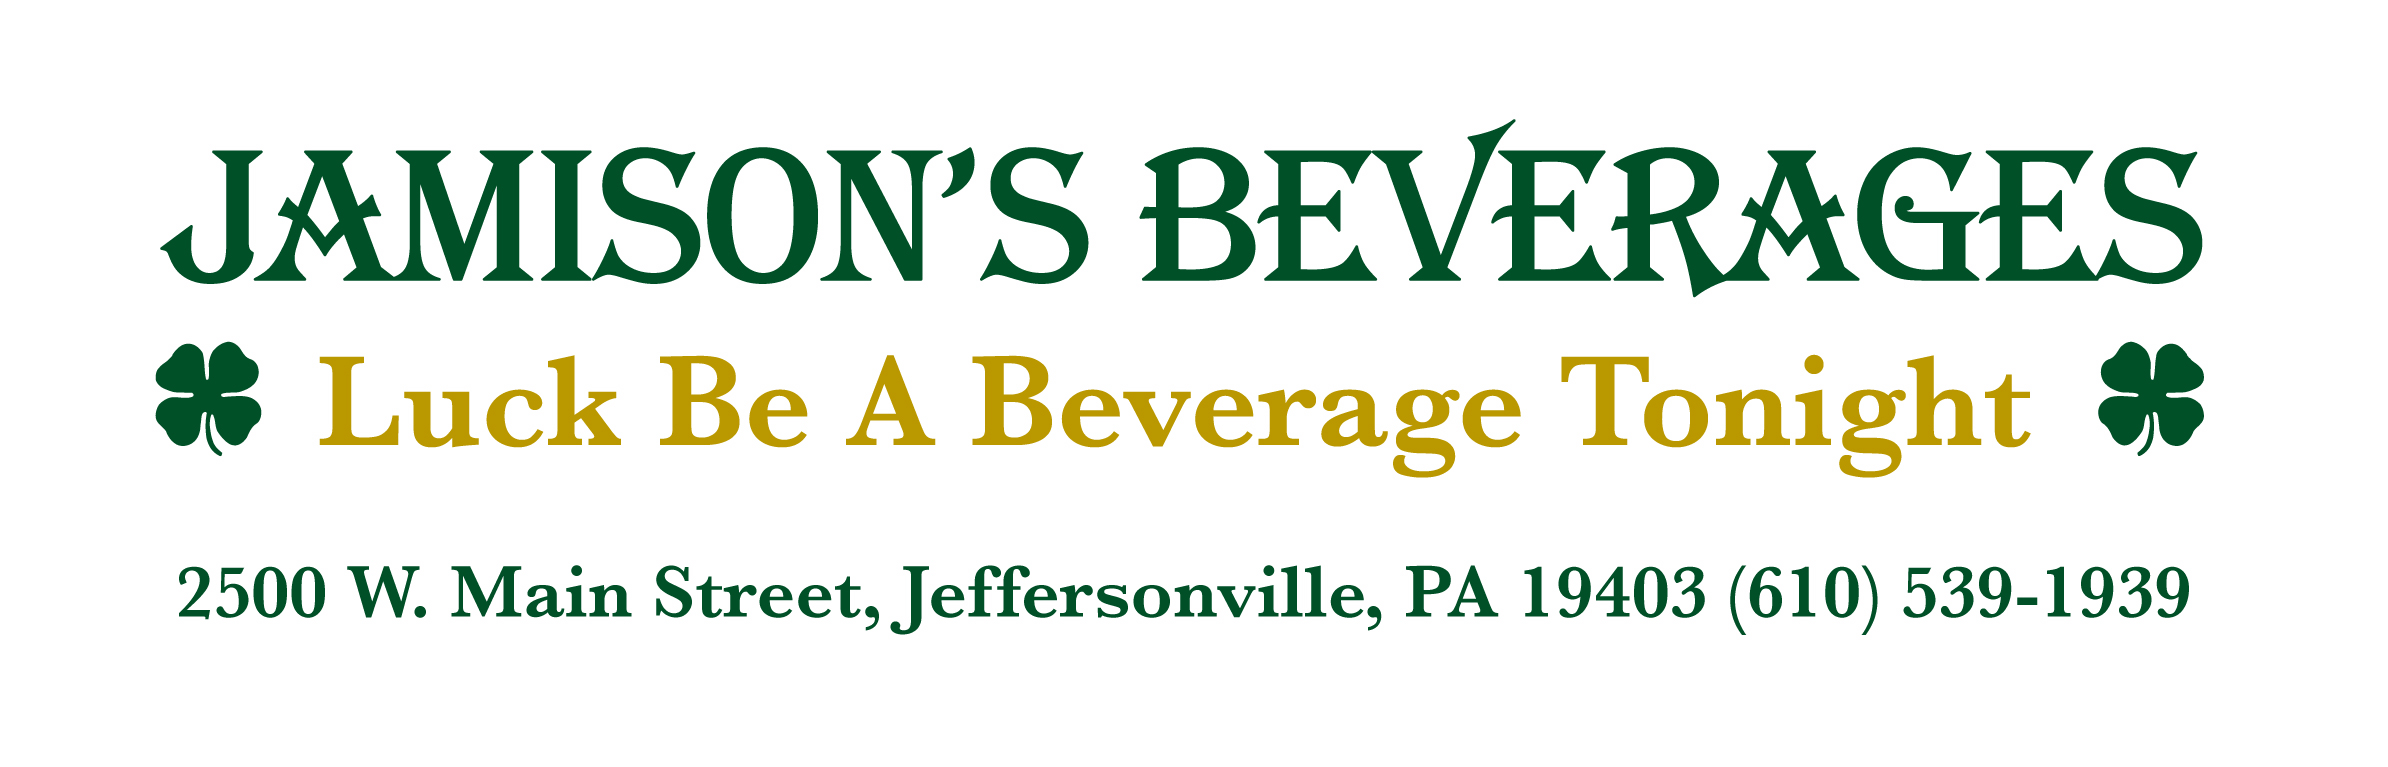 <B>JAMISON'S BEVERAGES</B>